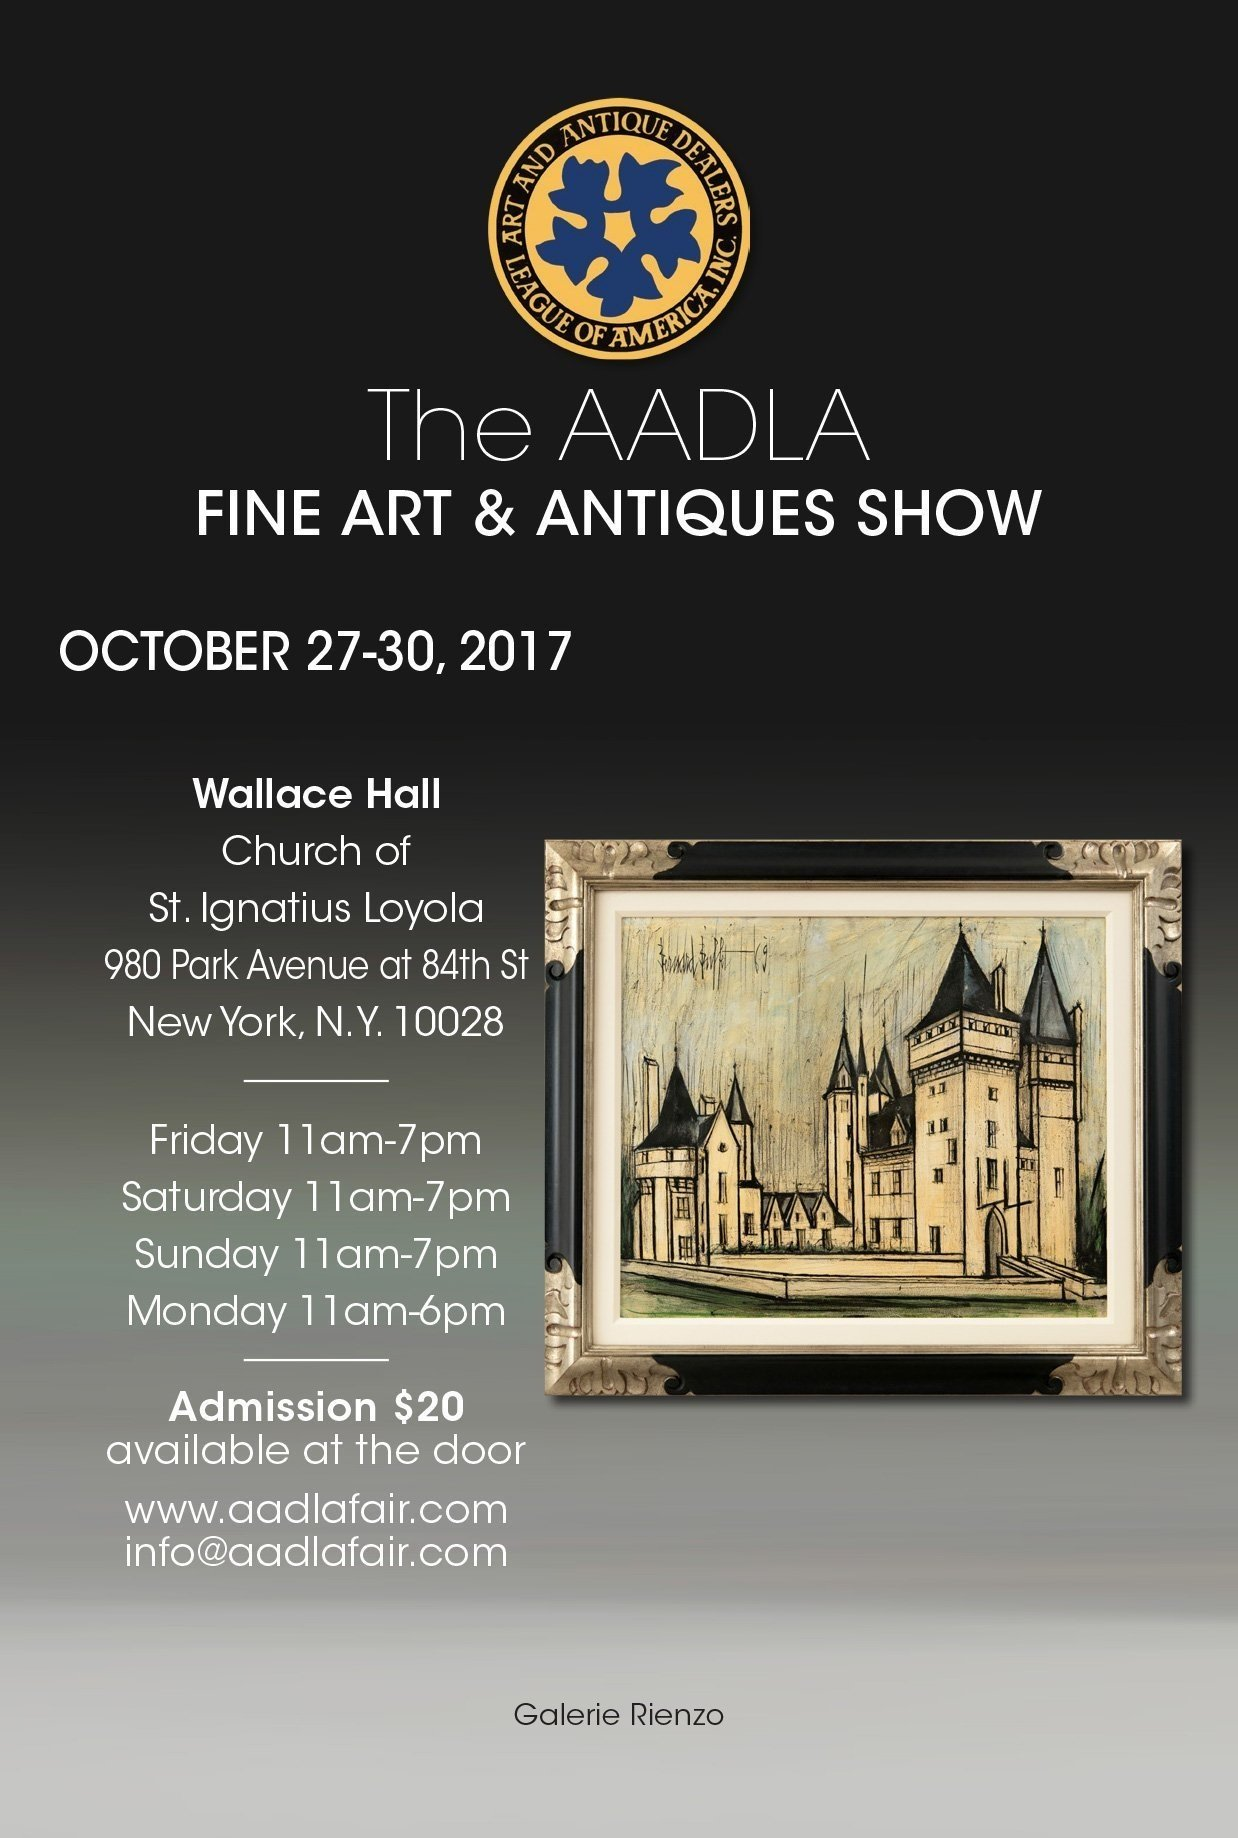 The AADLA Fine Art & Antiques Show flyer